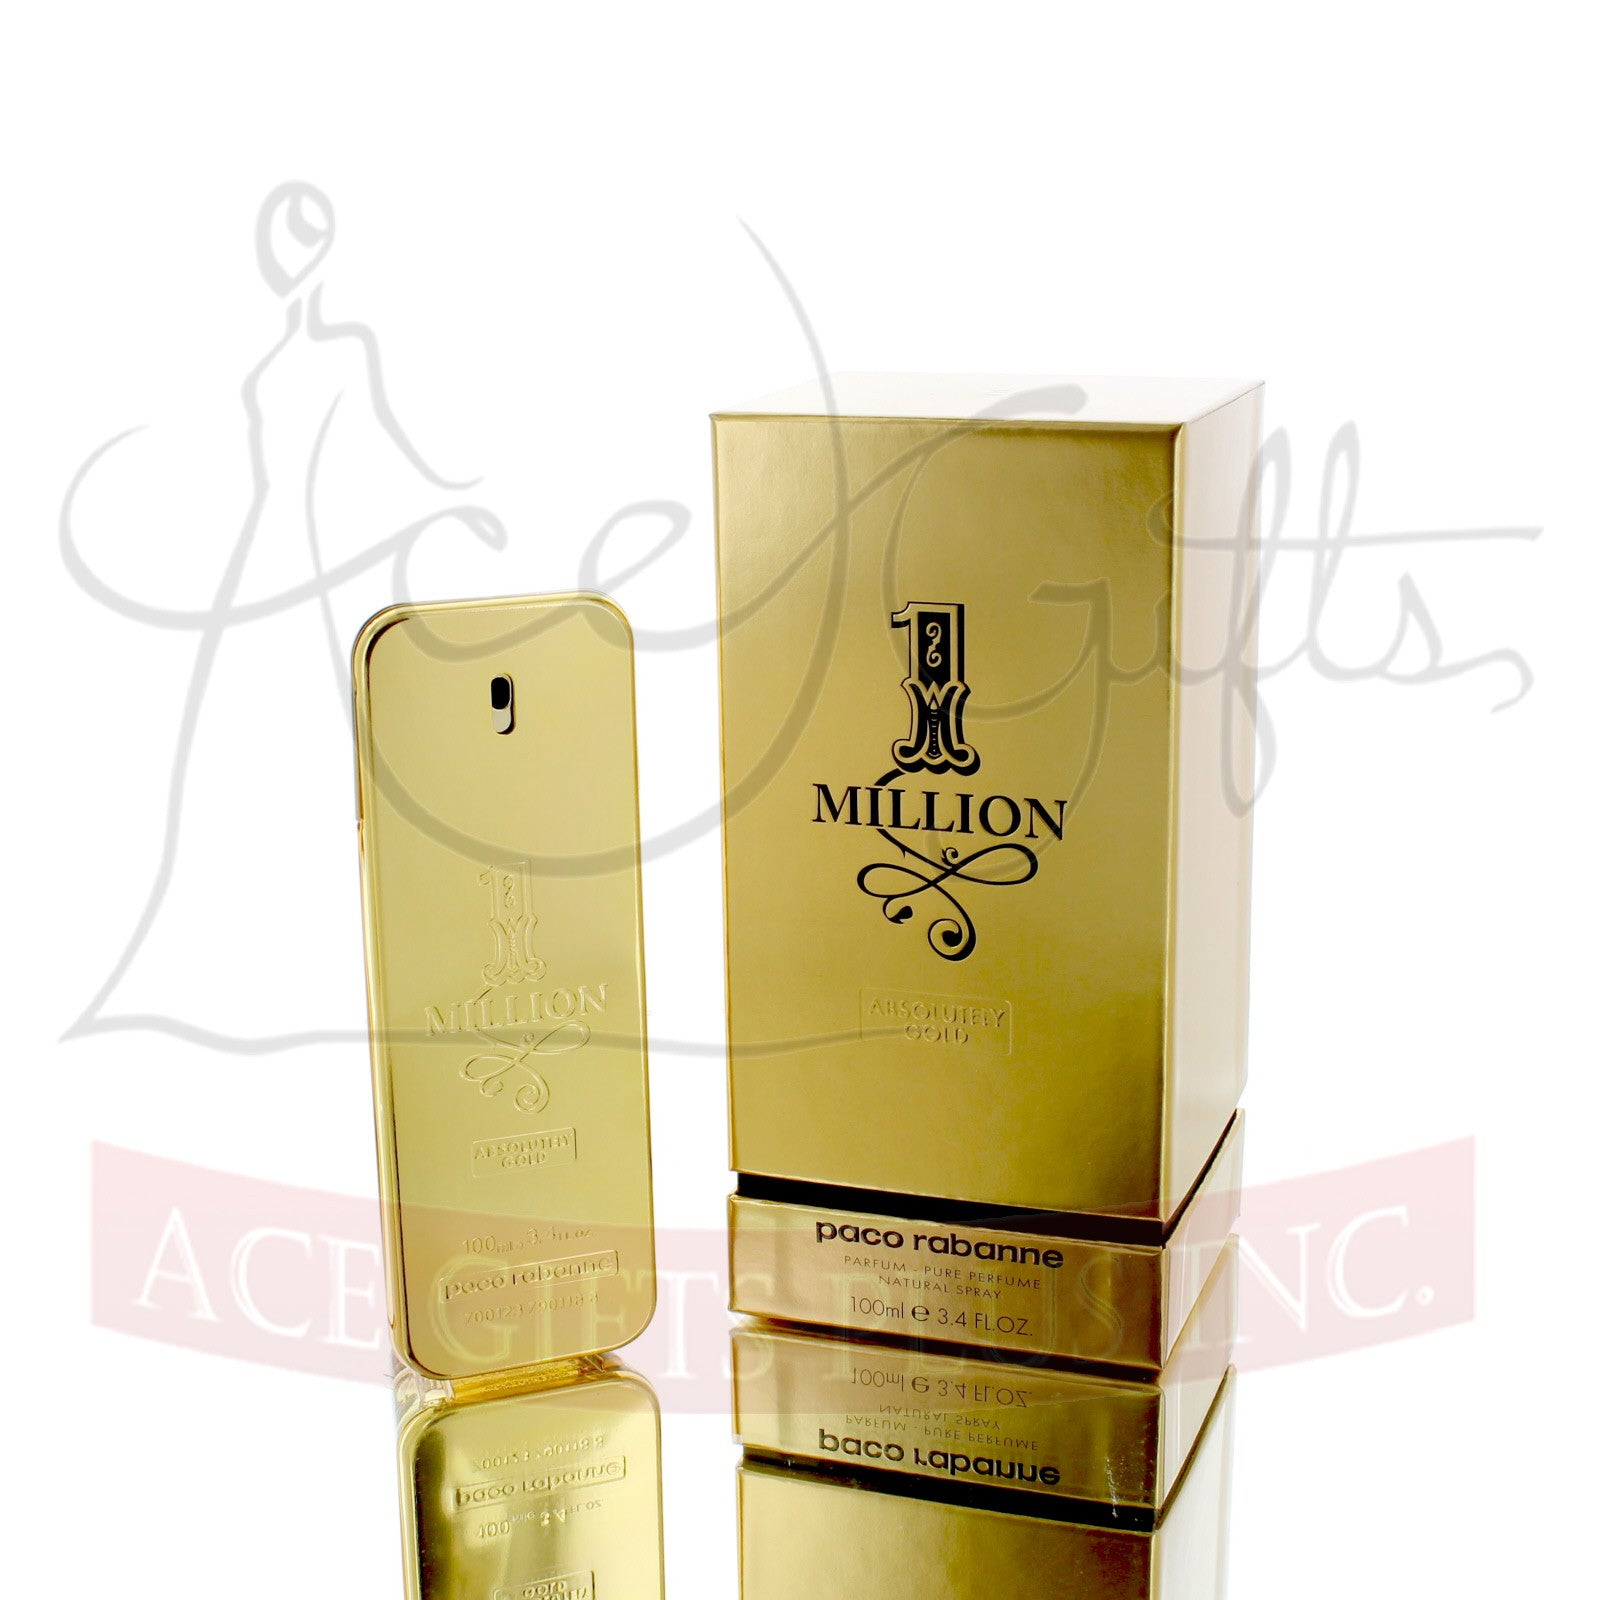 Ace Gifts Plus — Buy Fragrance Online at Ace Gifts Plus